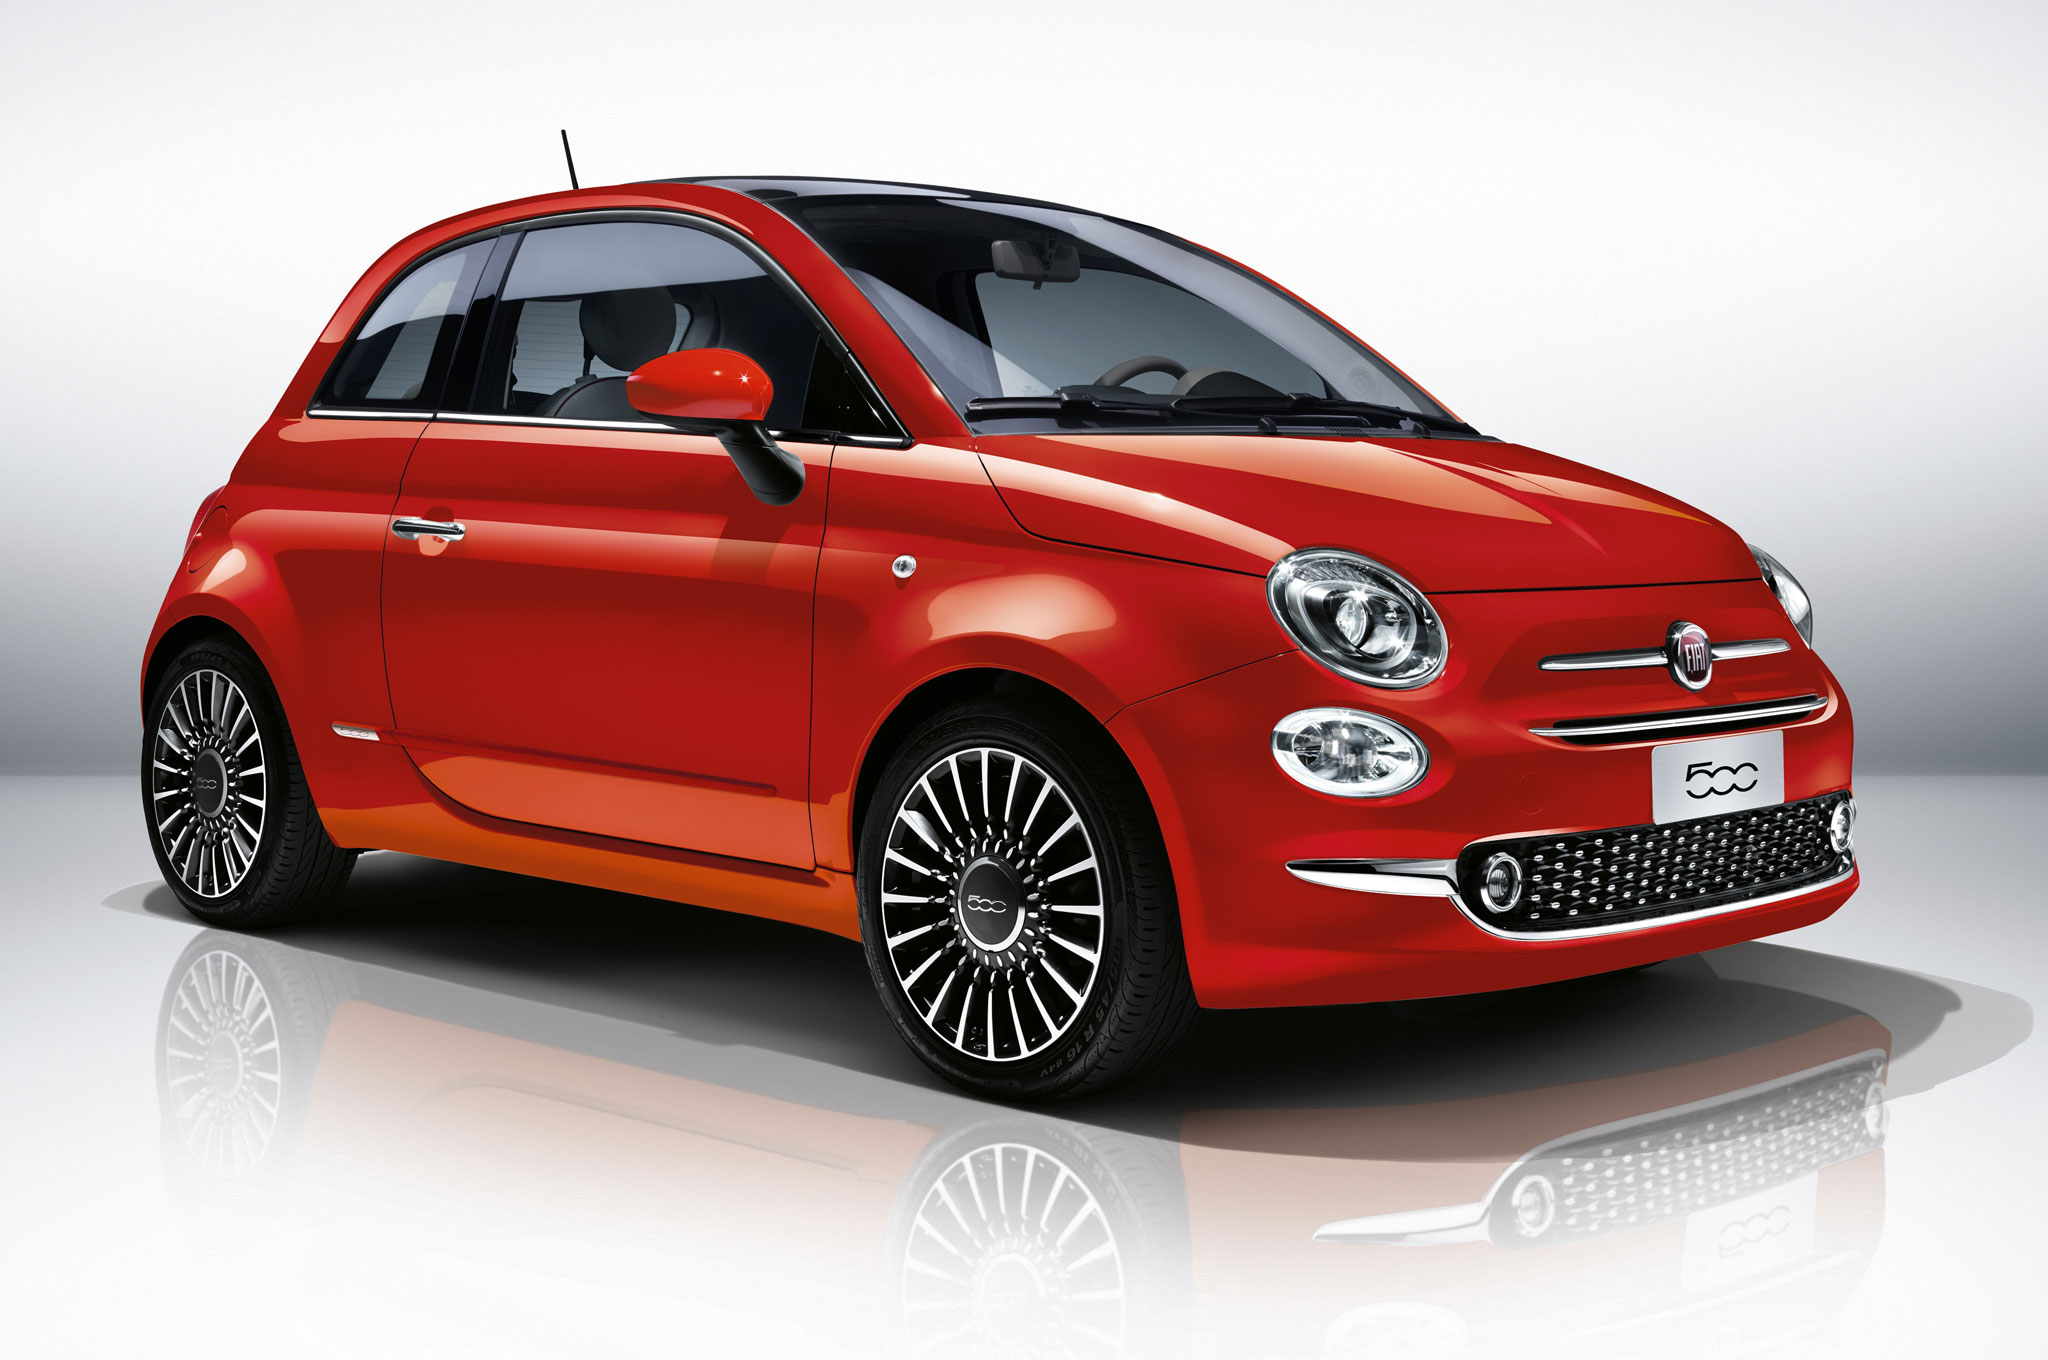 2016 fiat 500 refreshed with new look more efficient engines. Black Bedroom Furniture Sets. Home Design Ideas